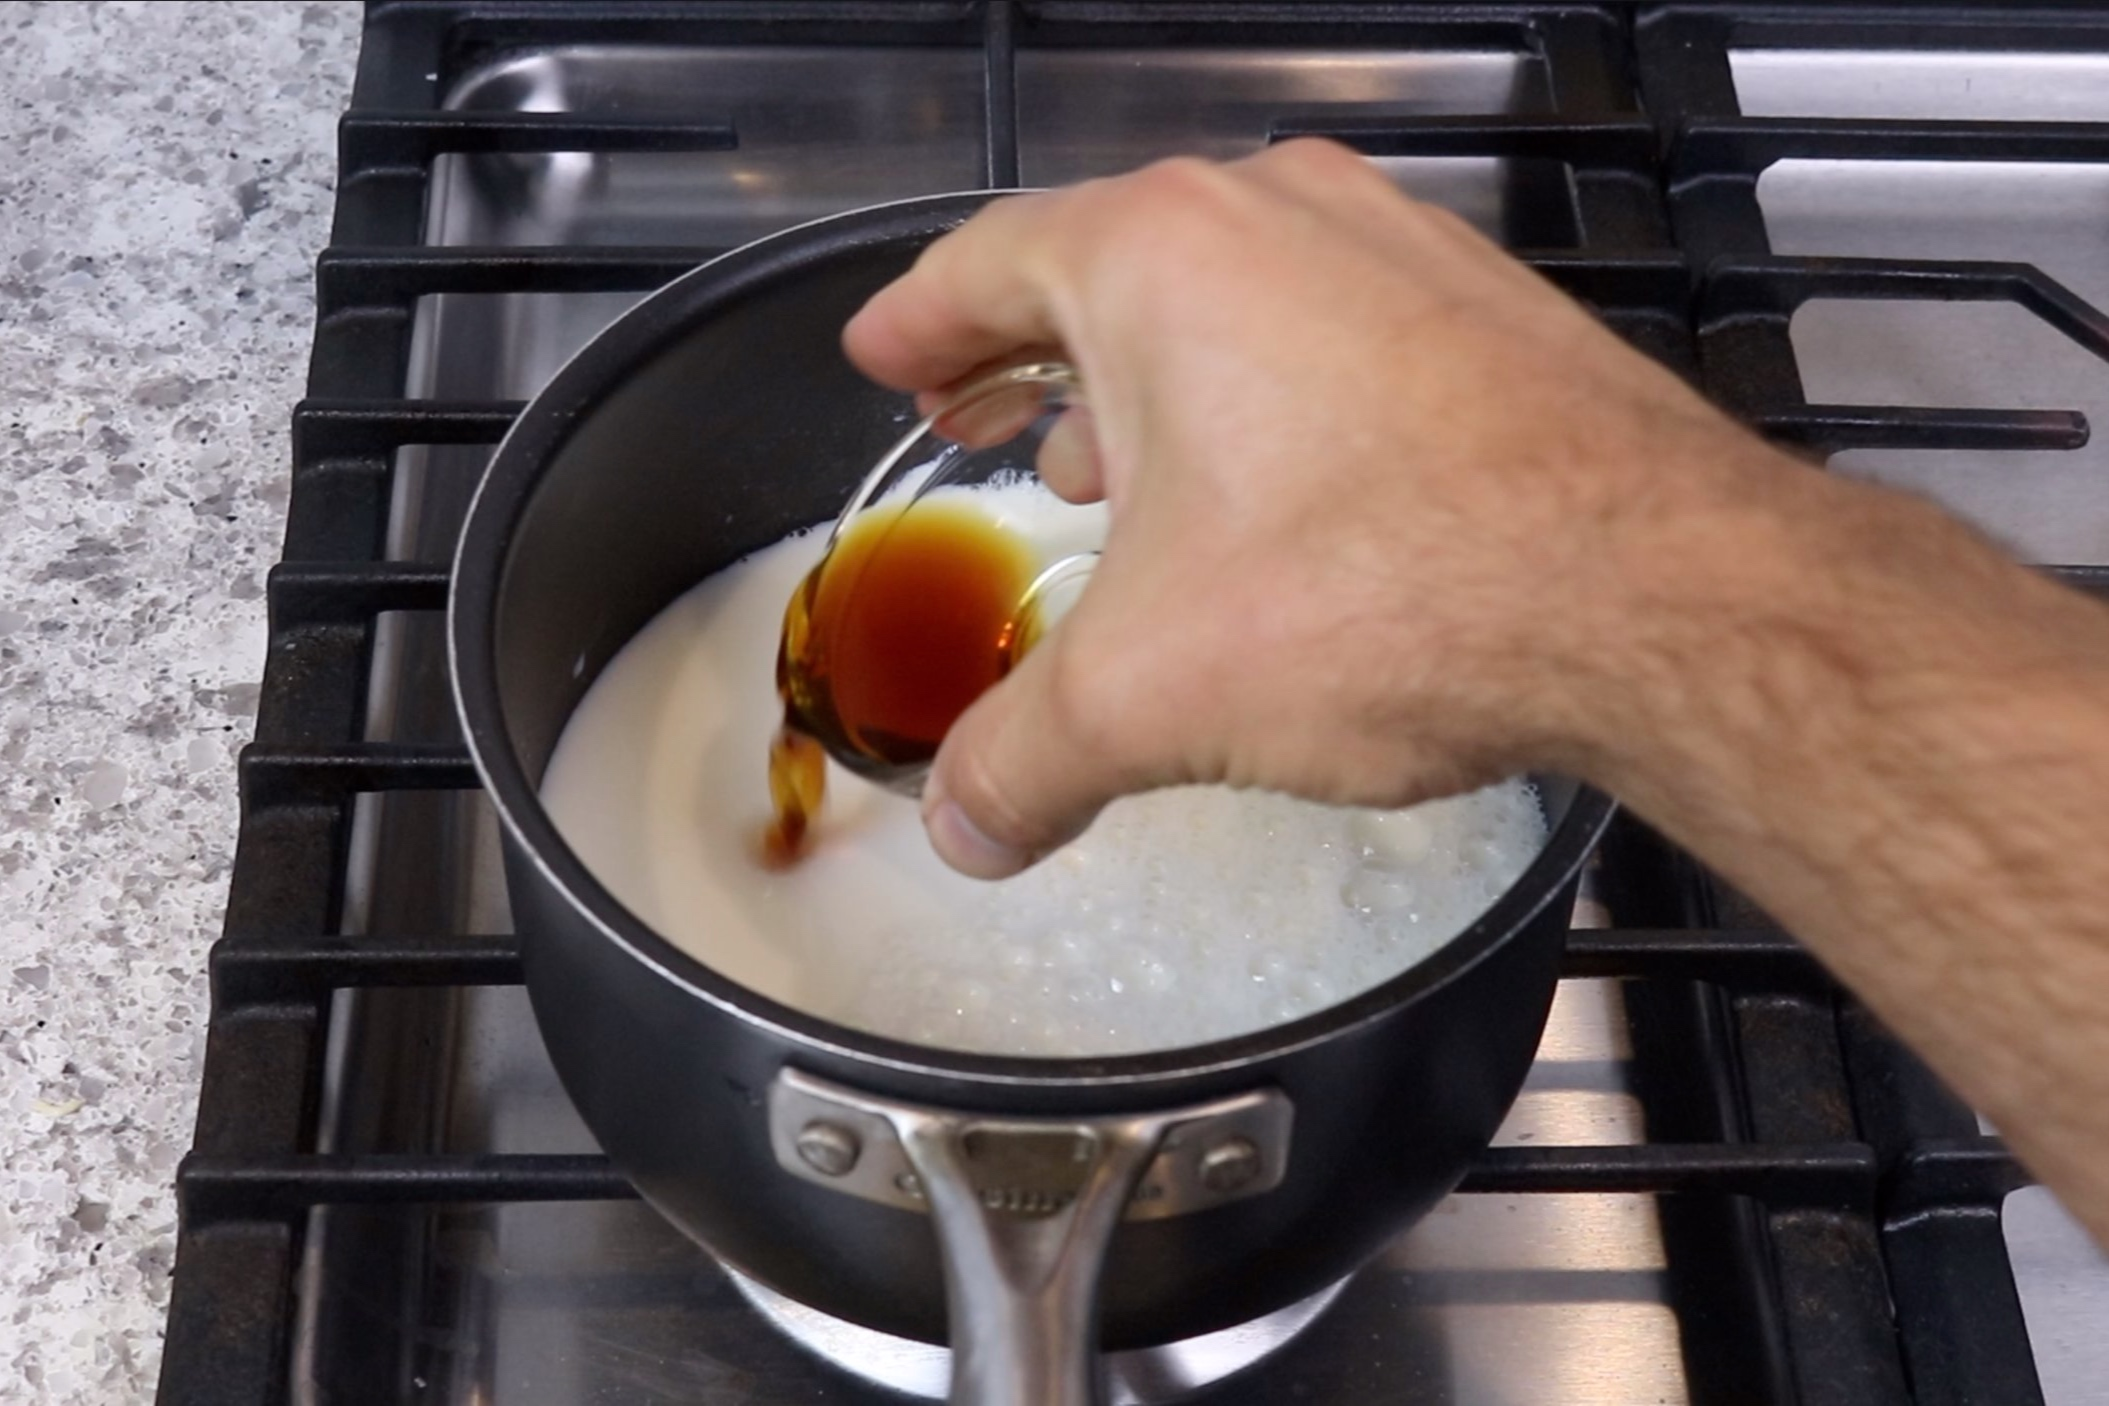 3. Add half (1 1/2 cups) of the milk and the vanilla to a large saucepan. Heat over medium heat stirring constantly until mixture is just about to boil. Around 2-3 minutes. -